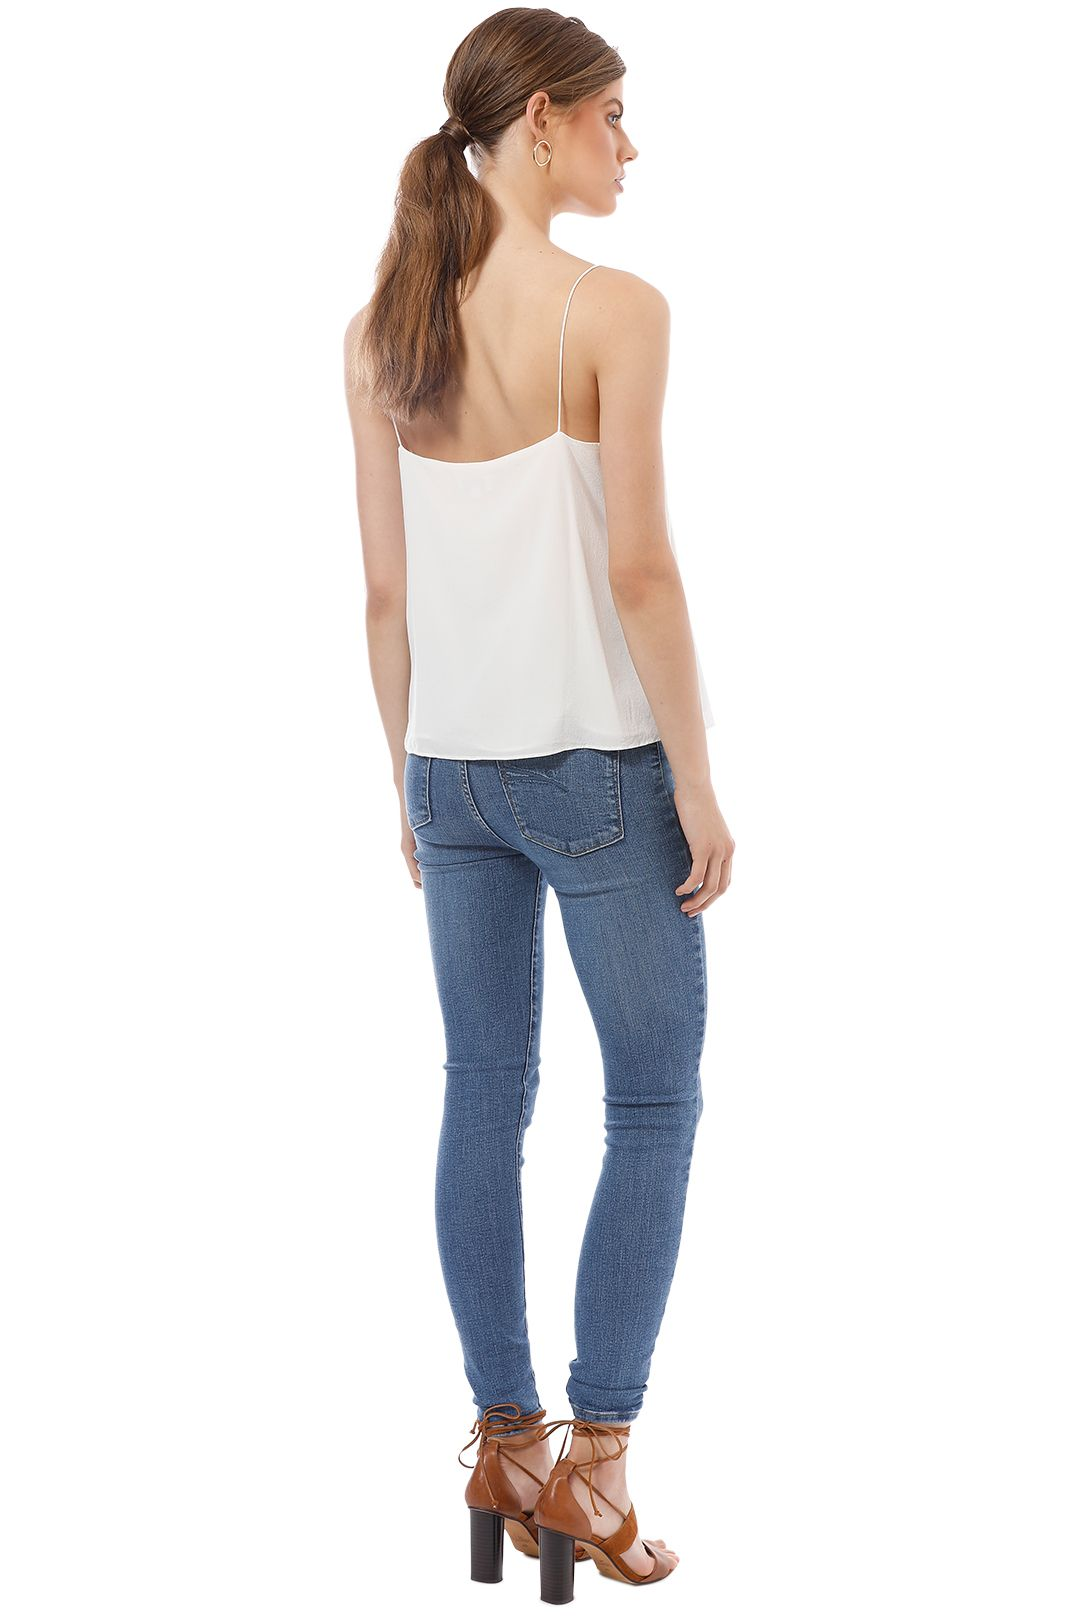 Elka Collective - Lucca Cami - White - Back